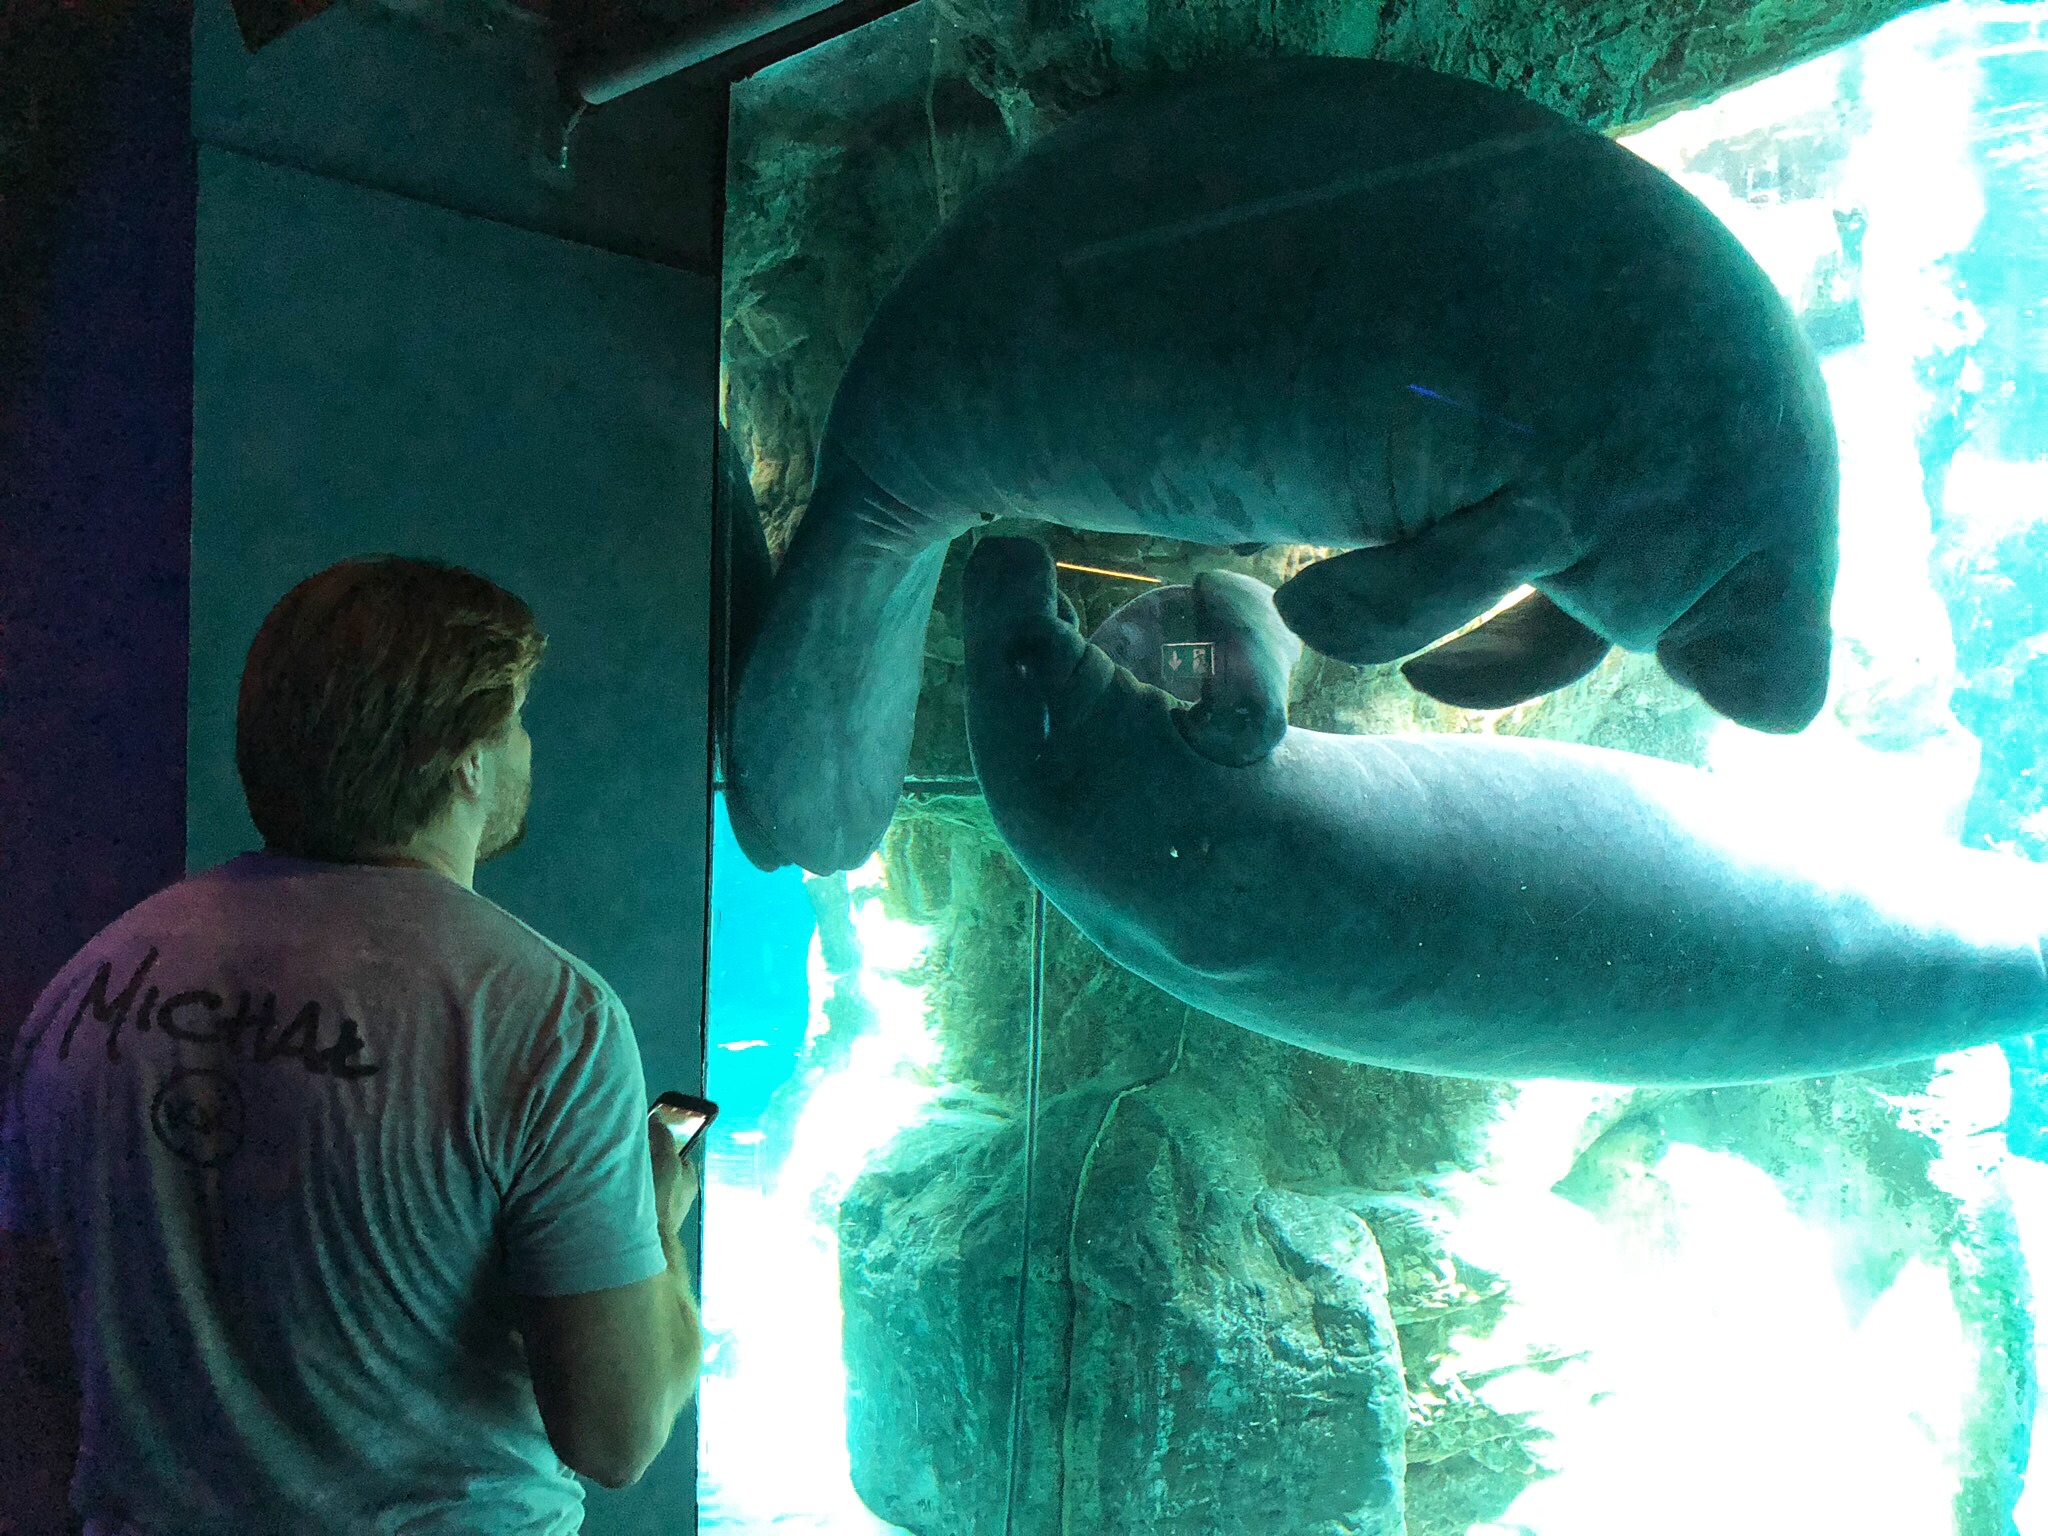 Michał checking out the manatees!